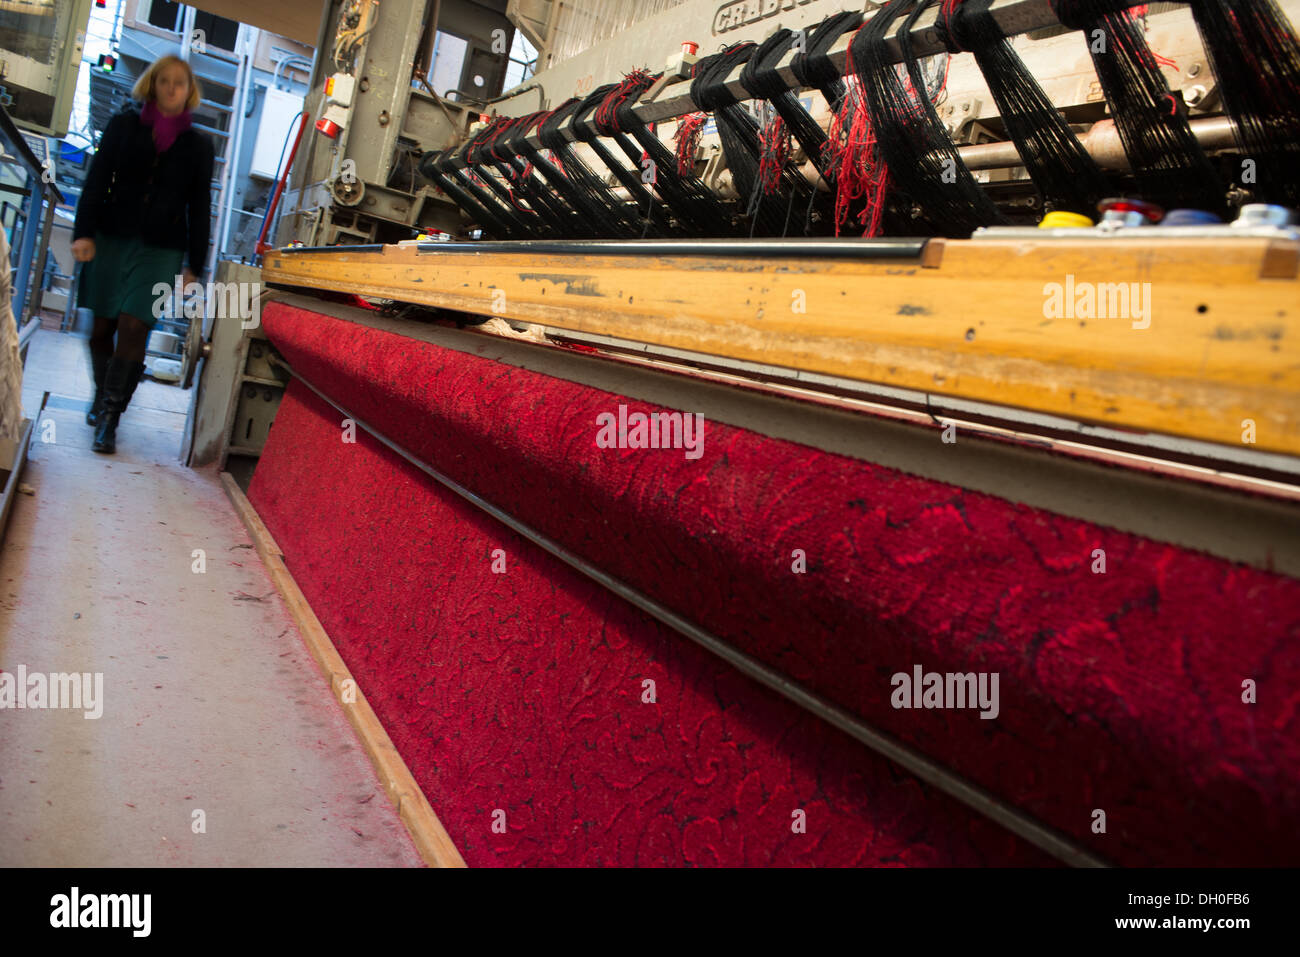 The Axminster Carpets factory works again after businessman Stephen Boyd bought it out of administration. - Stock Image